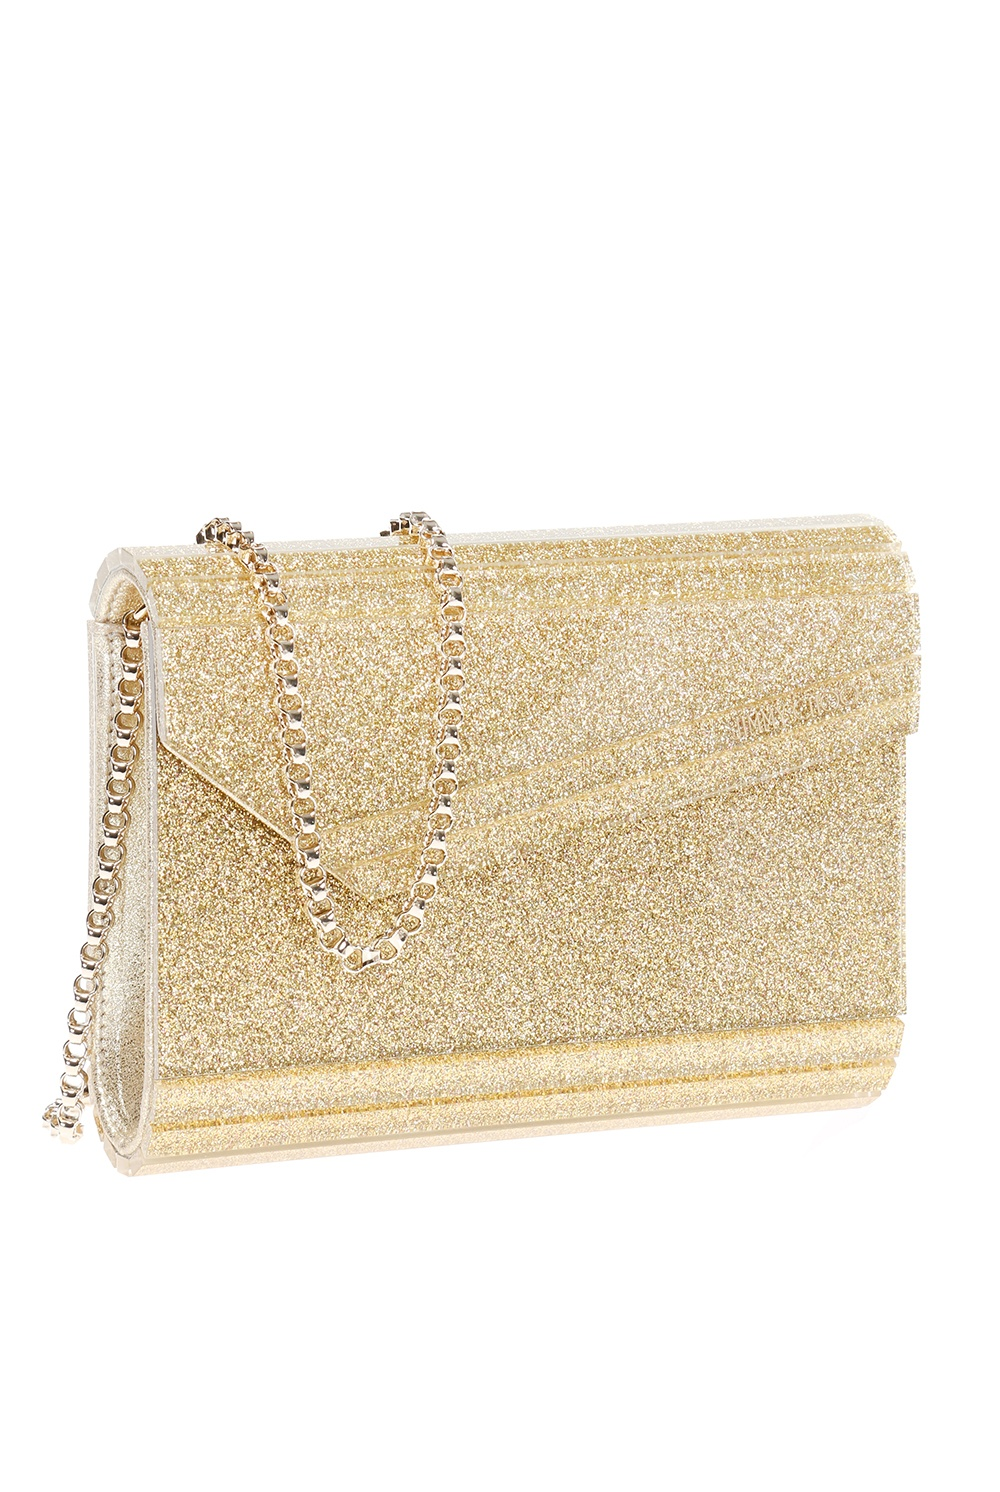 Jimmy Choo 'Candy' shoulder bag